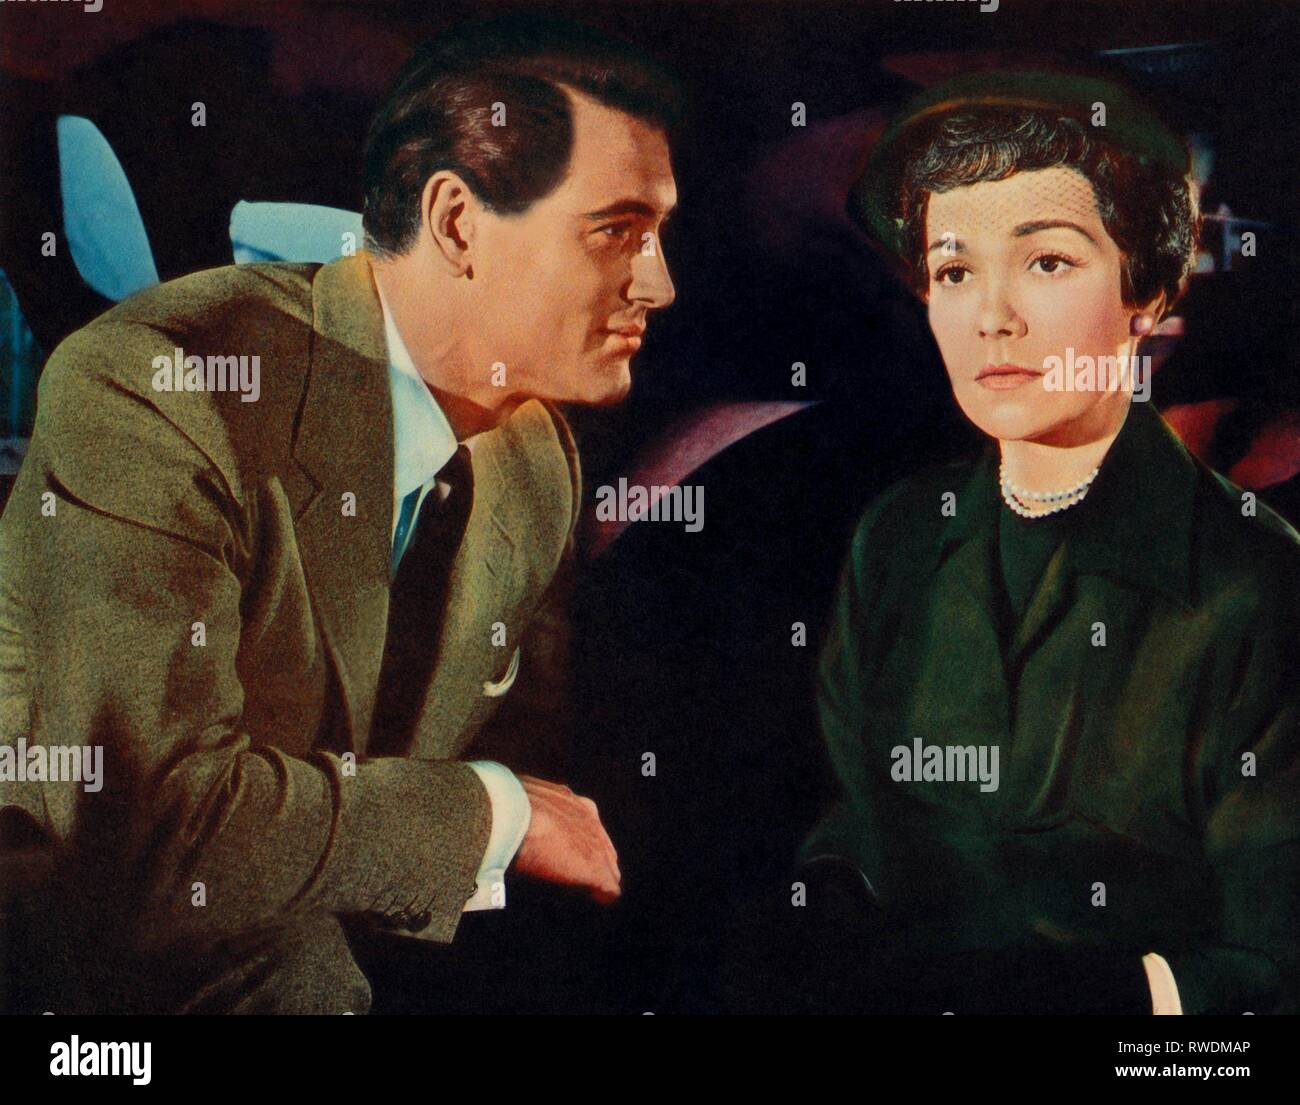 HUDSON,WYMAN, MAGNIFICENT OBSESSION, 1954 - Stock Image